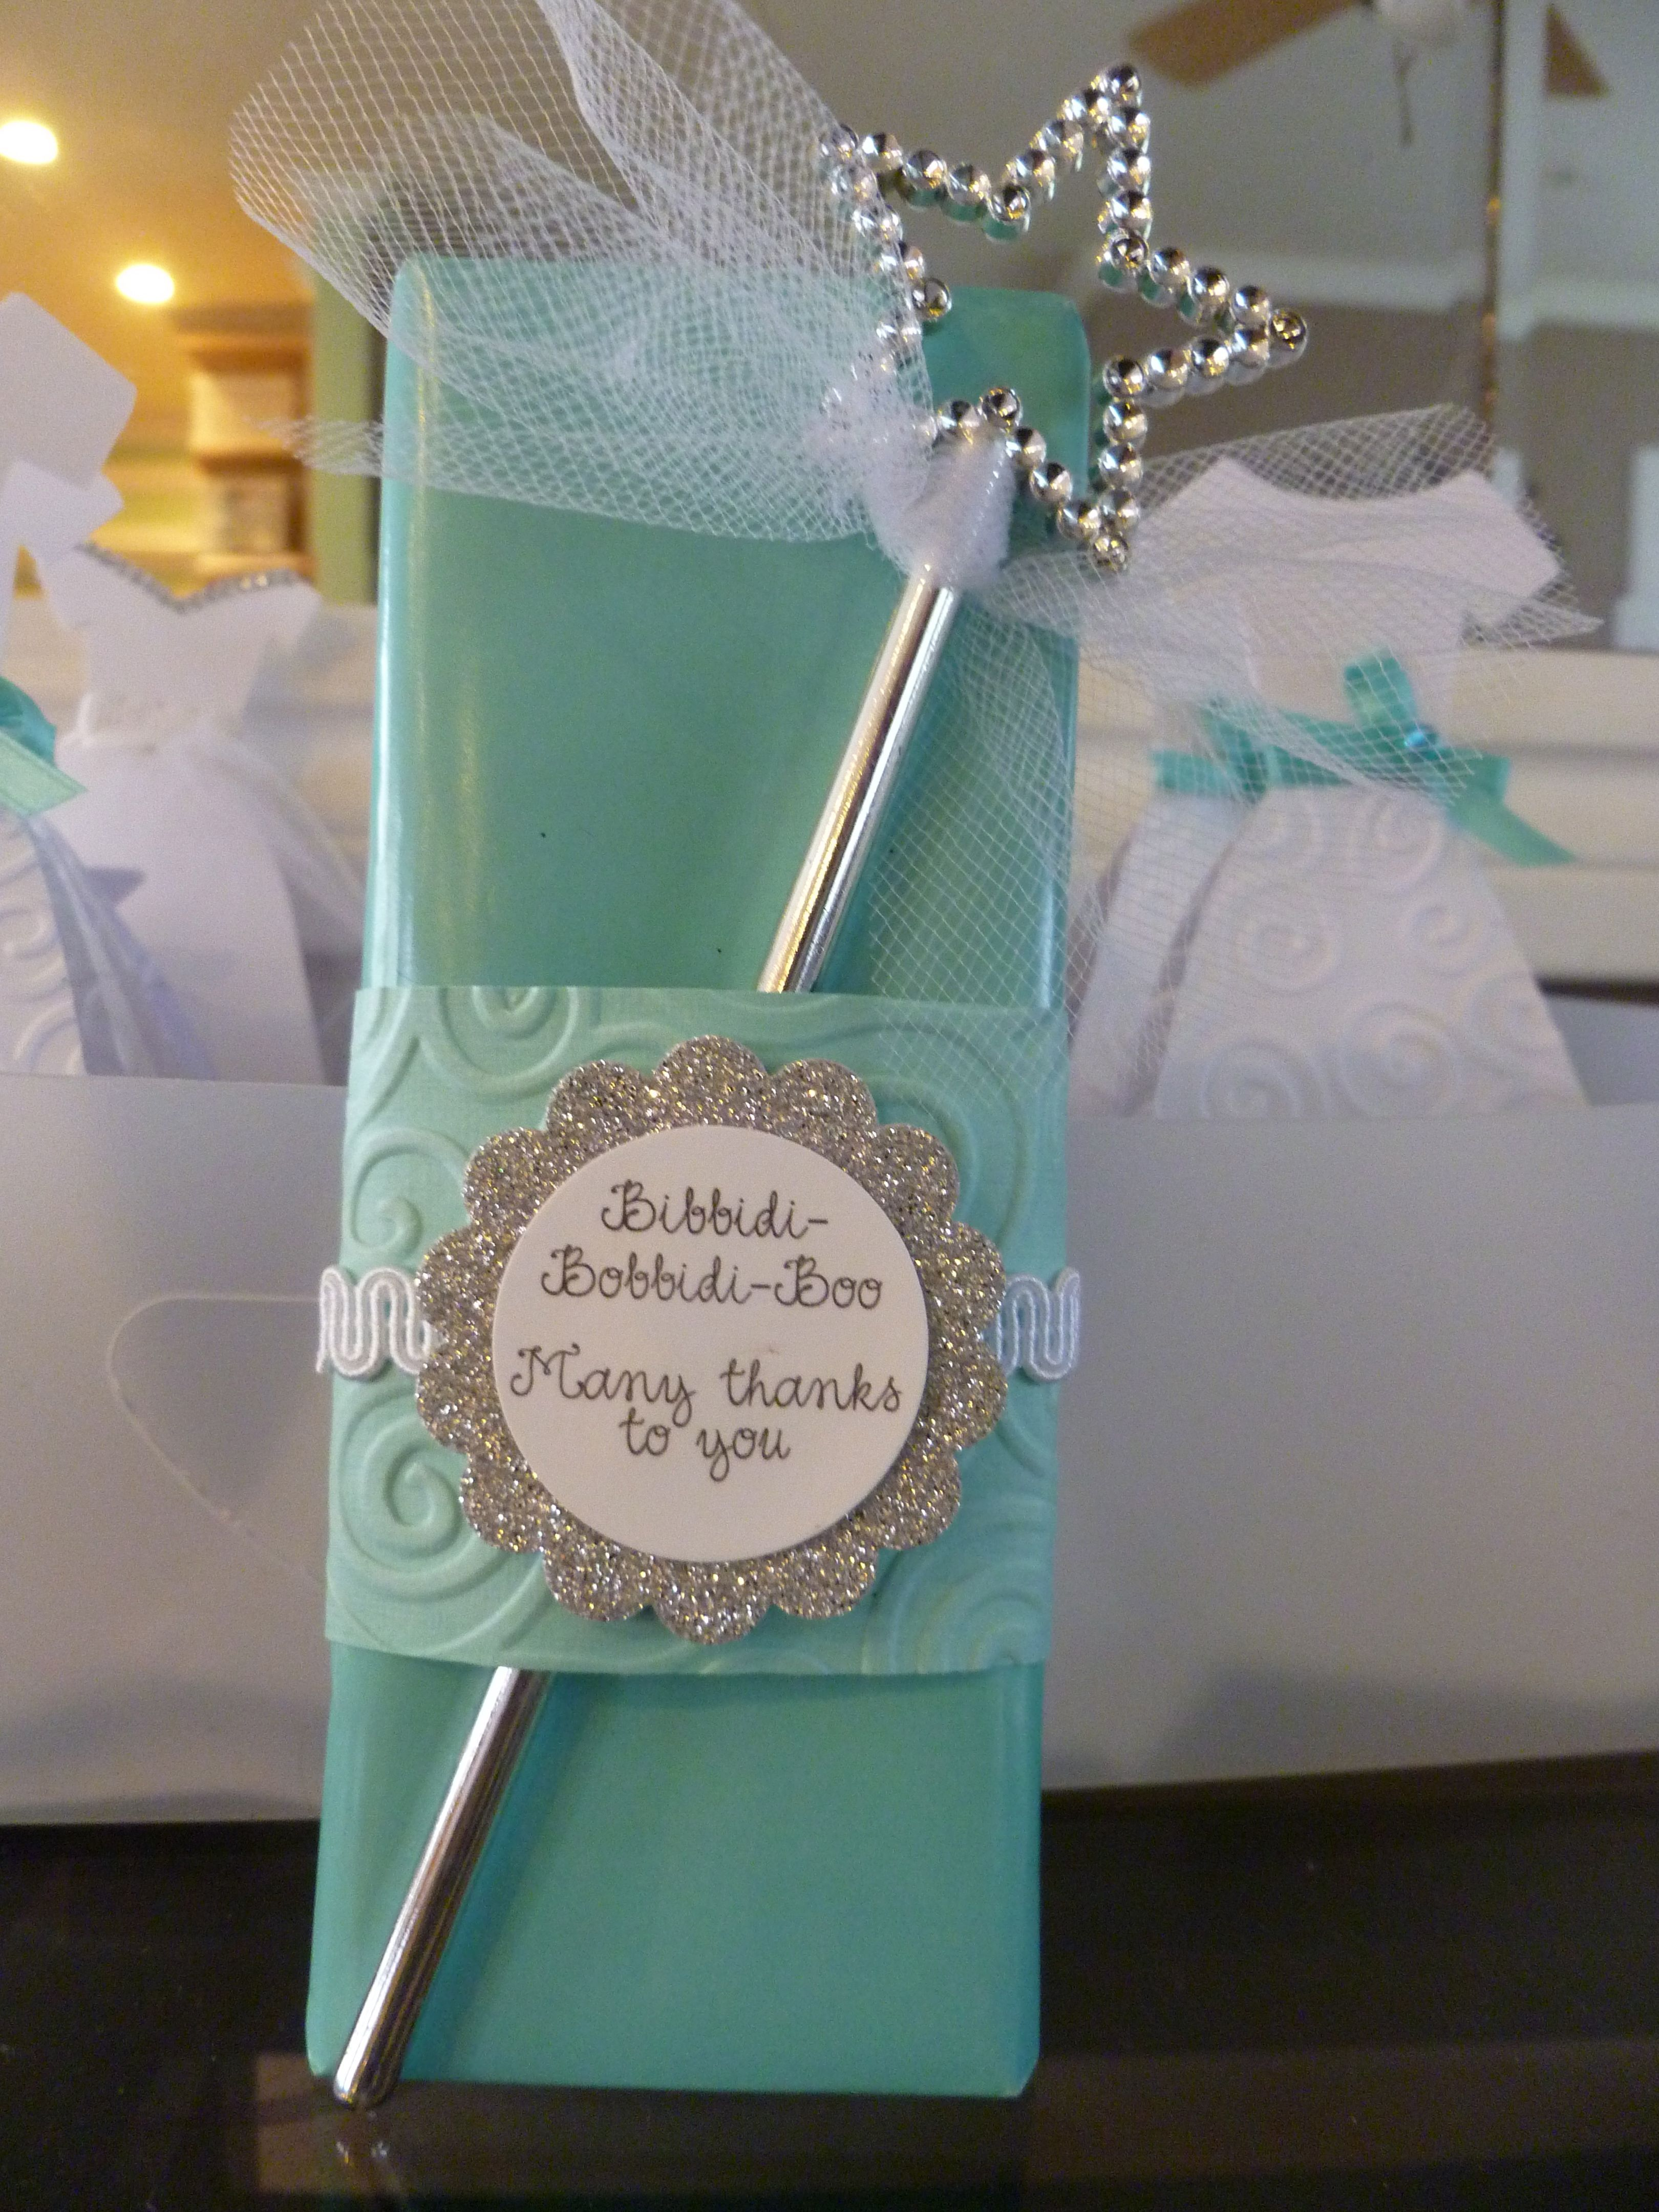 this goes with the previous pin posted of white bridal gown for cinderella theme tiffany blue shower